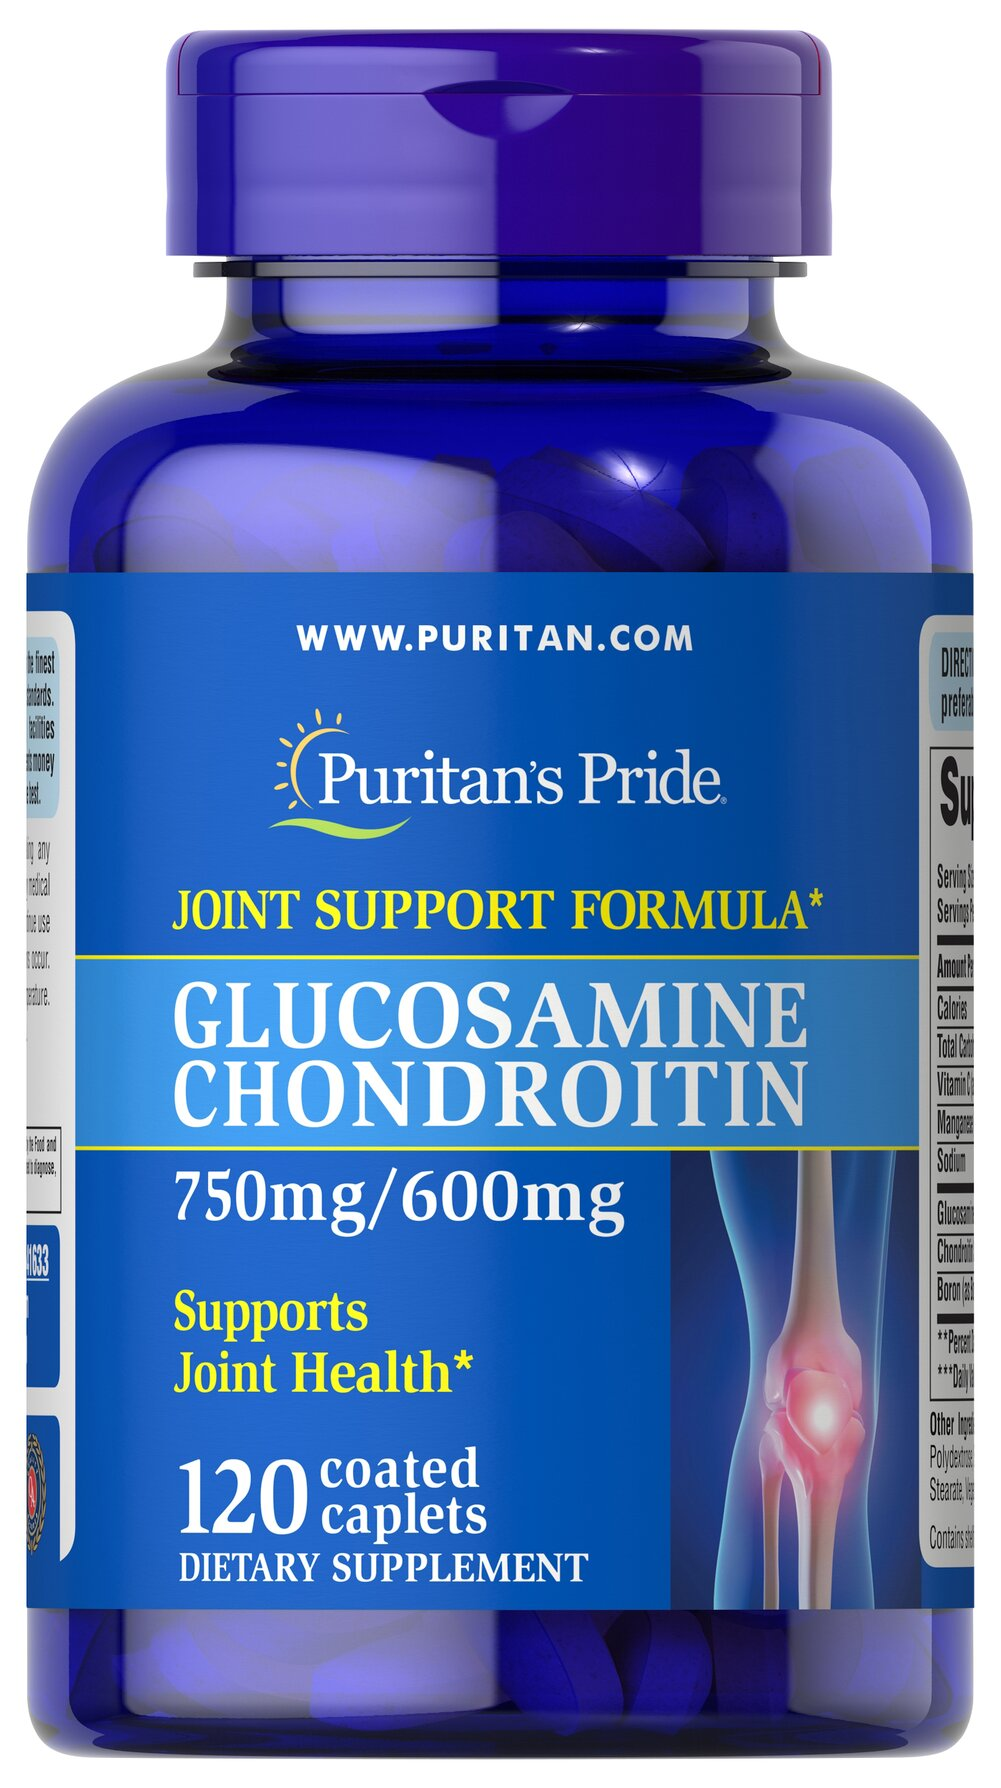 Triple Strength Glucosamine Chondroitin 750 mg/600 mg <p>Glucosamine is a key structural component in cartilage and acts as a lubricant**</p><p>Chondroitin acts as a lubricant and is an important molecular component of glycosaminoglycans**</p><p>One serving of Triple Strength Glucosamine Chondroitin helps promote comfortable joint movement and two caplets provide 1500 mg Glucosamine and 1200 mg Chondroitin.</p> 120 Caplets 750 mg/600 mg $37.58